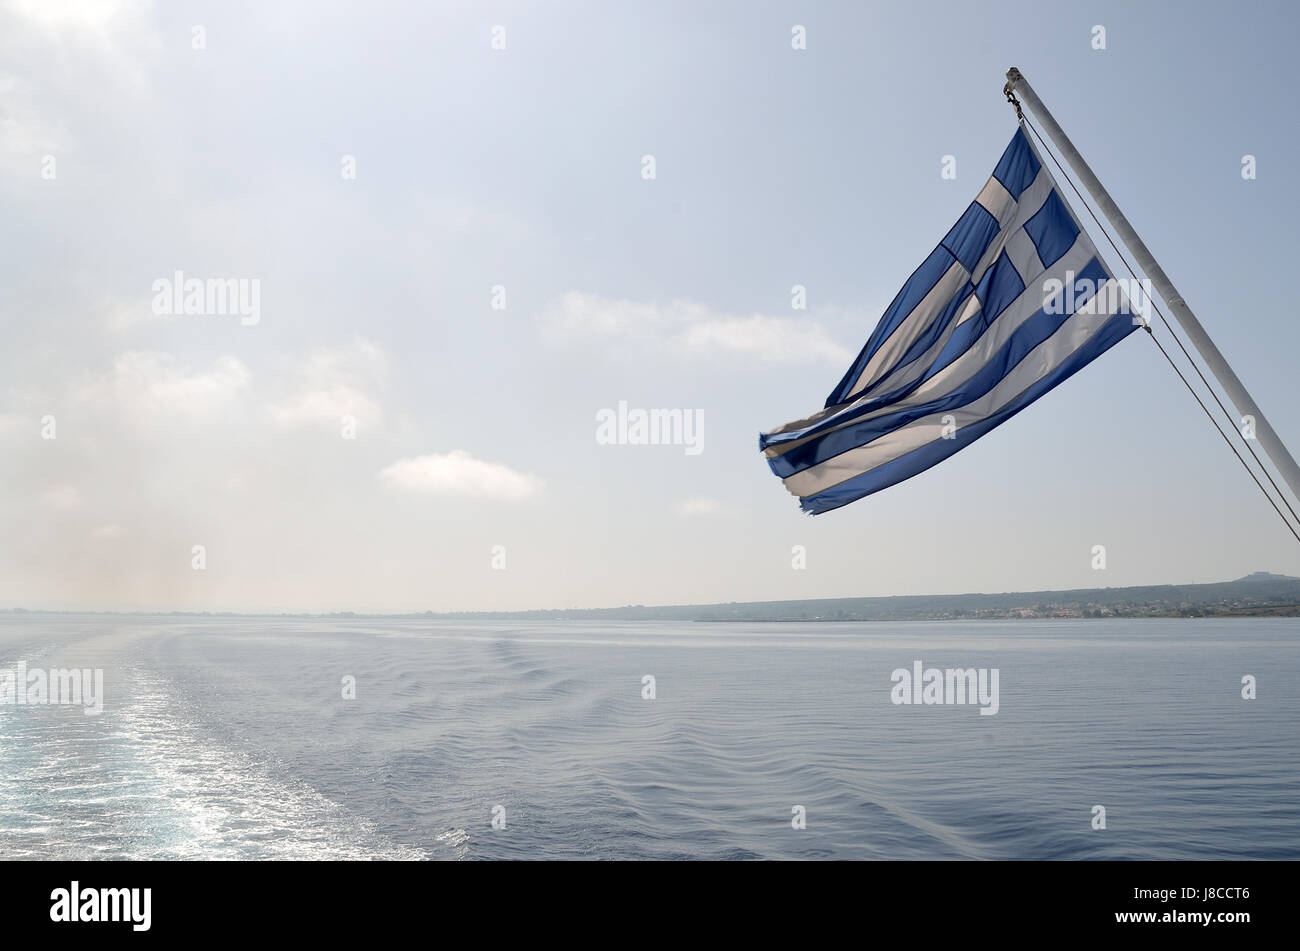 Wake of ferry boat and Greek flag - Stock Image